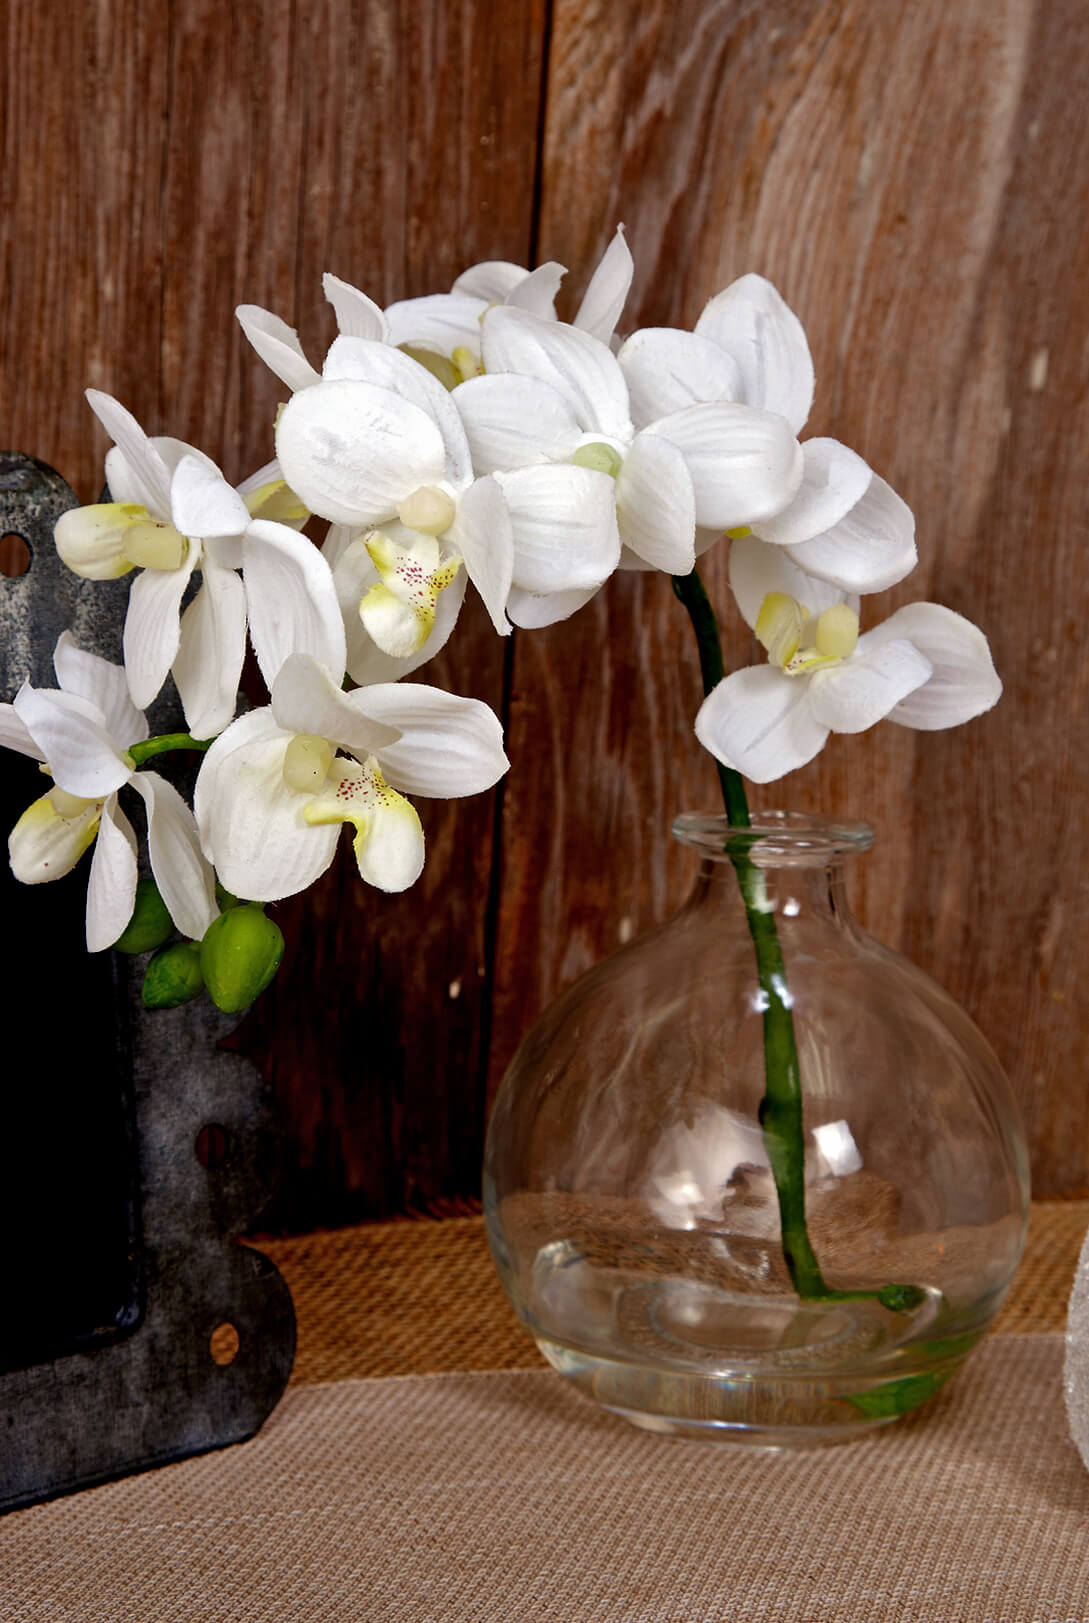 Phalaenopsis orchid in glass vase cream 10 phalaenopsis orchid in glass vase cream reviewsmspy